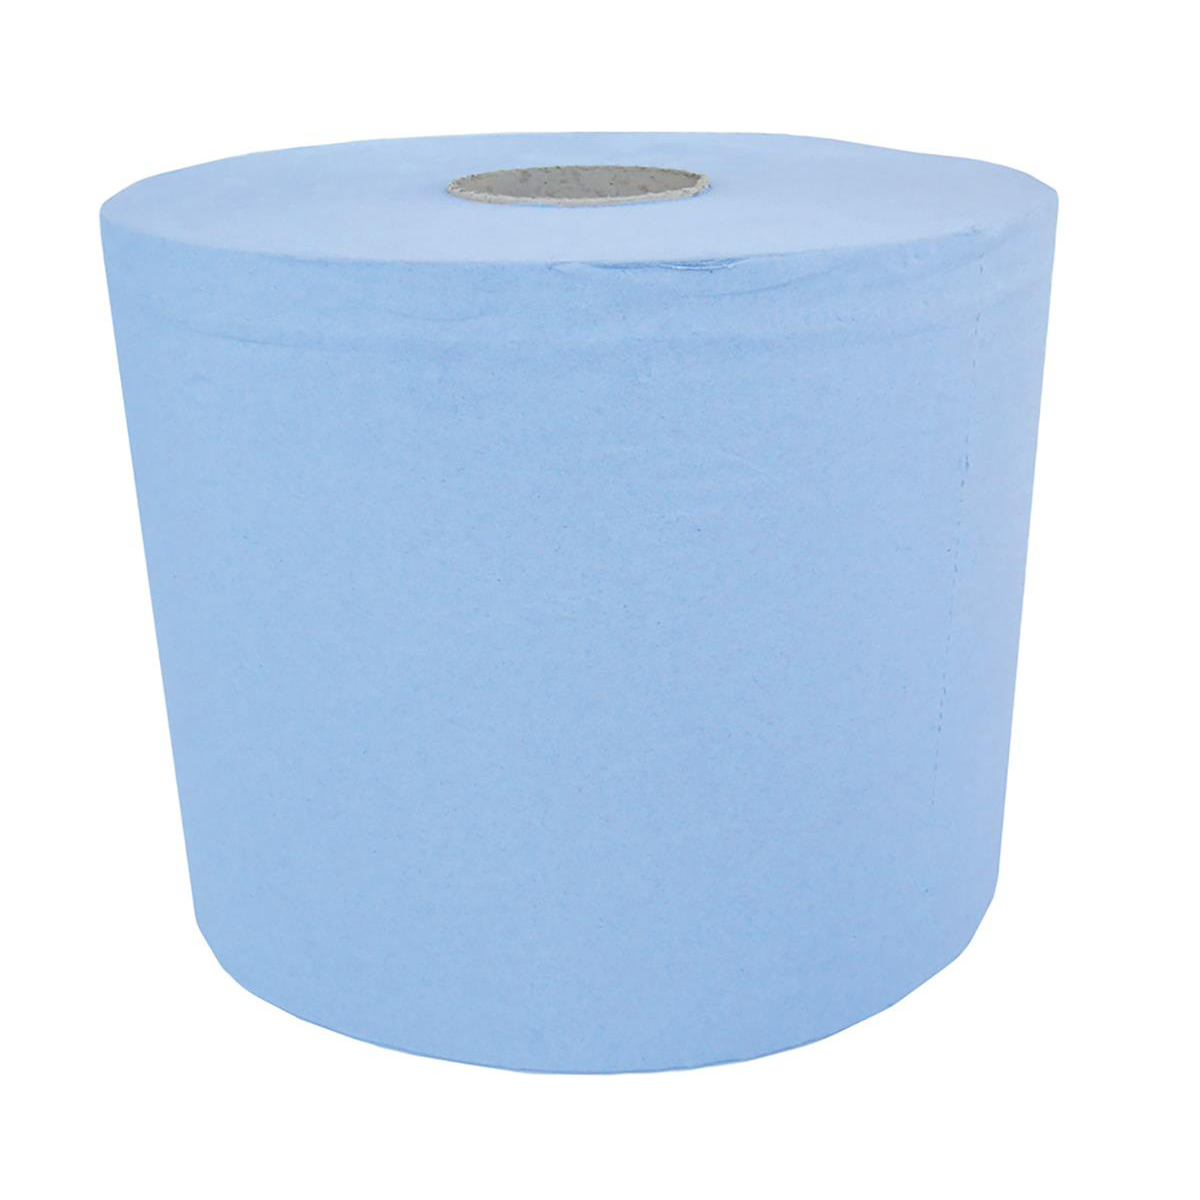 Maxima Centrefeed Roll 3-Ply 180mmx130m Blue Ref 1105186 [Pack 6]